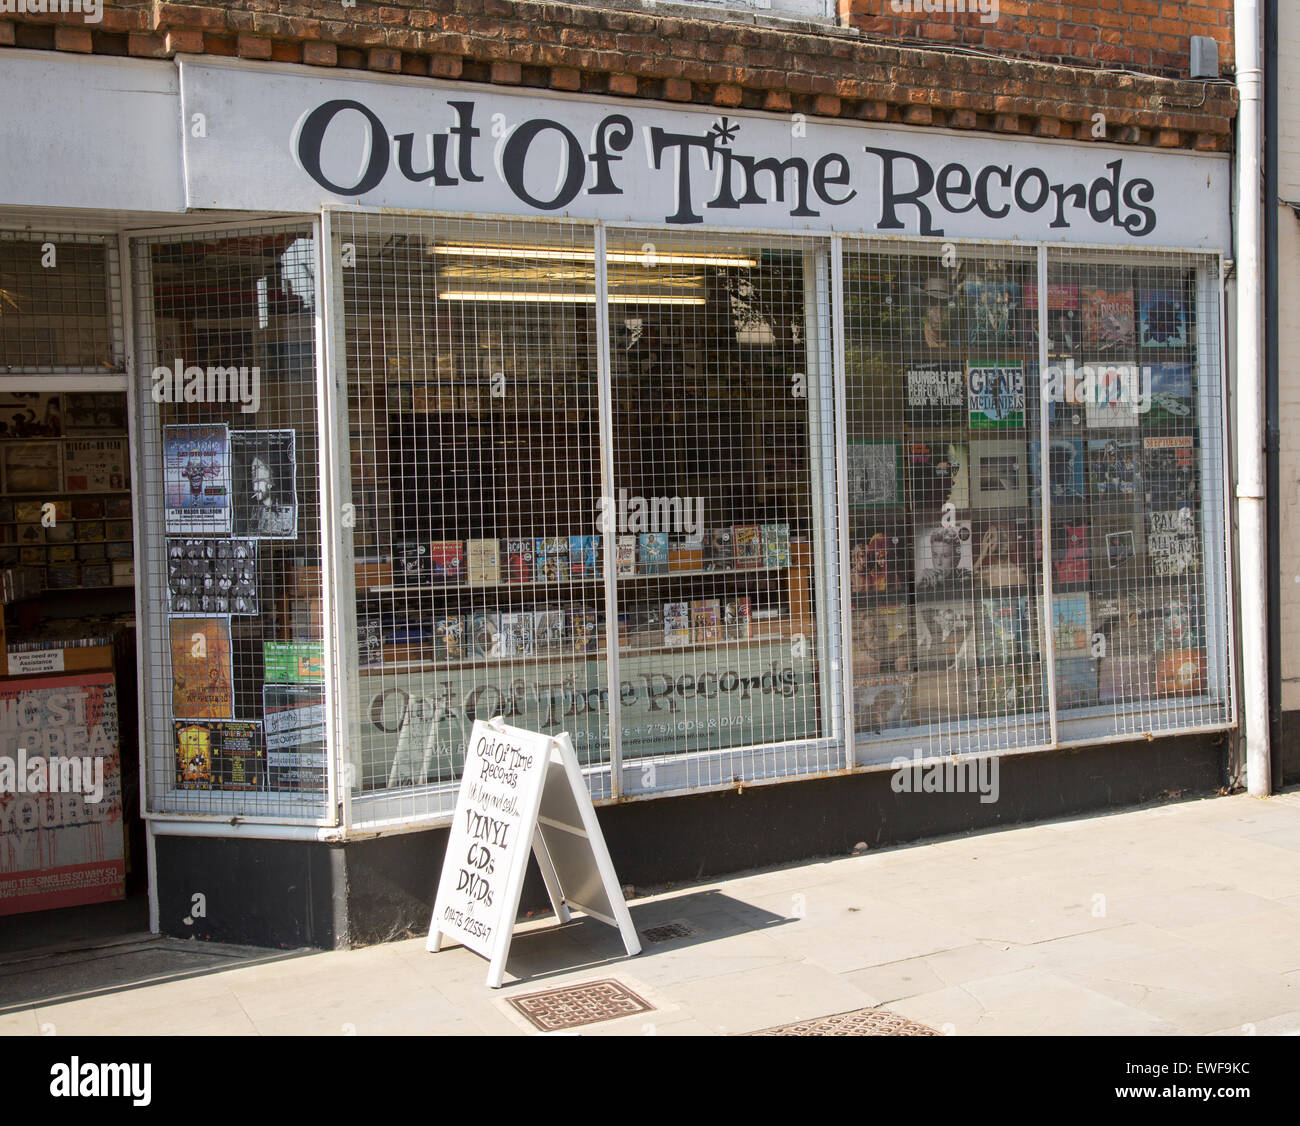 Secondhand record shop, Ipswich, Suffolk, England, UK - Stock Image